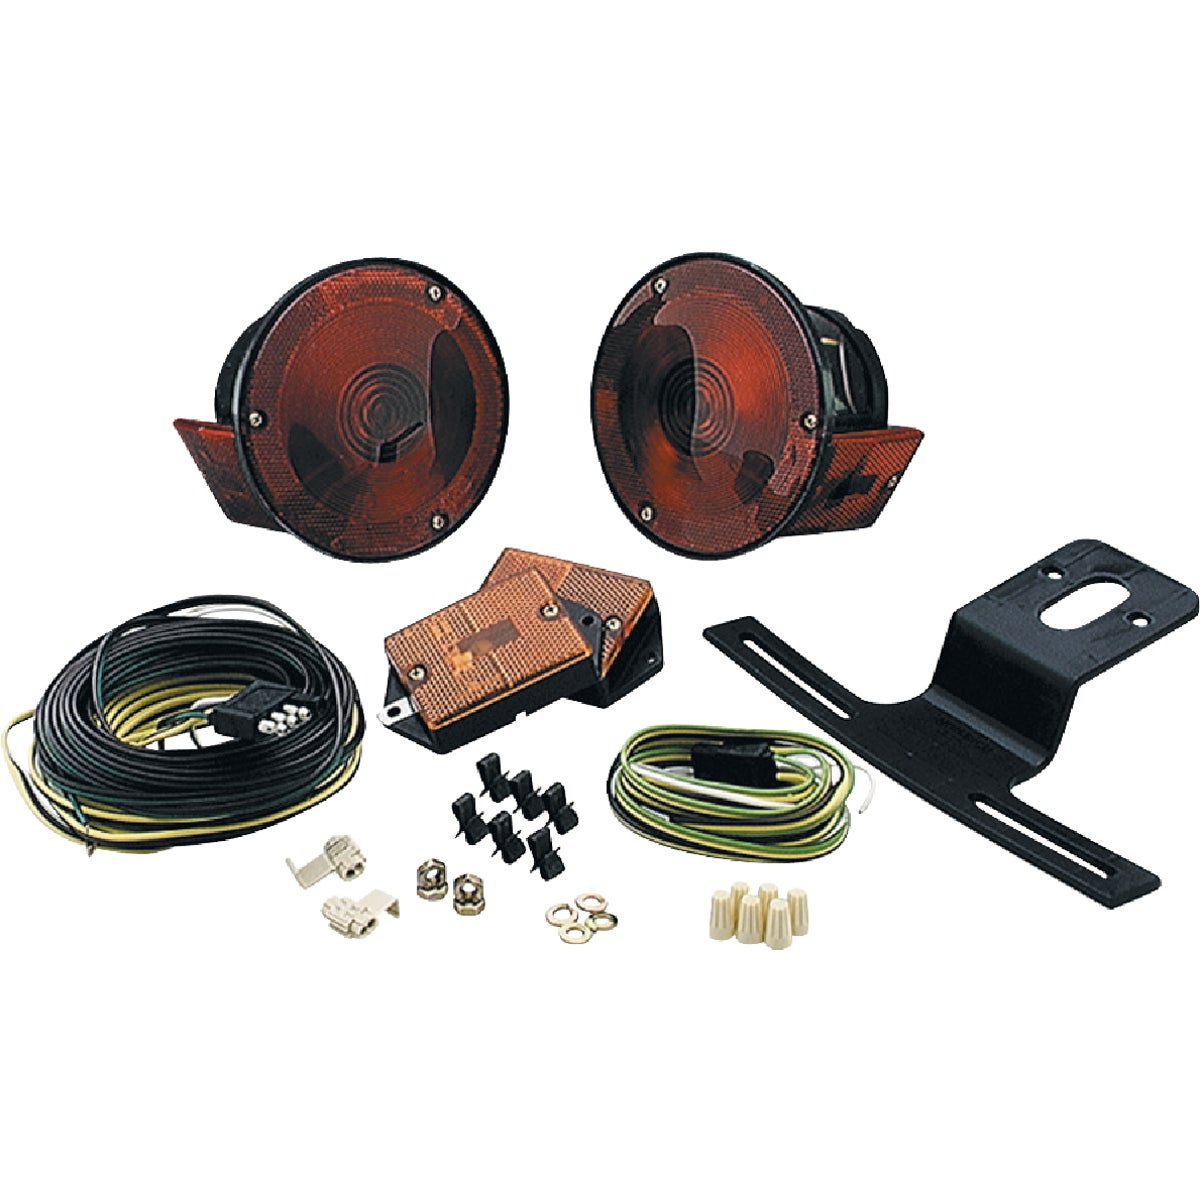 TRAILER LIGHT KIT - V540 by Peterson Mfg Co